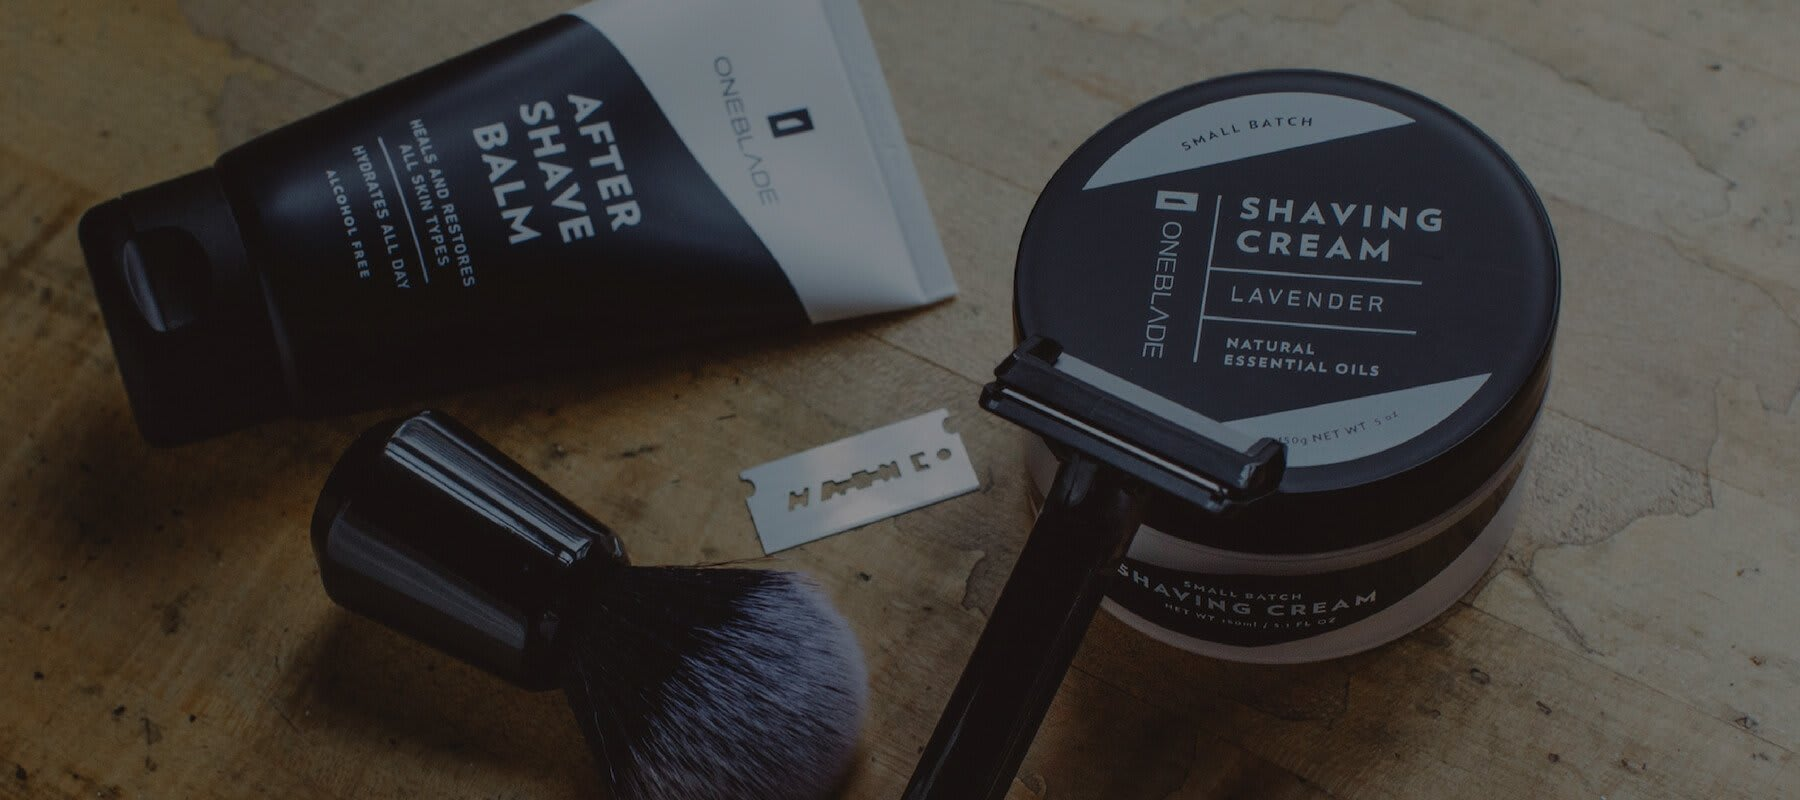 """Oneblade """"Black Tie"""" Shaving kit items, including a razor, blade, brush, """"After Shave Balm"""", and"""